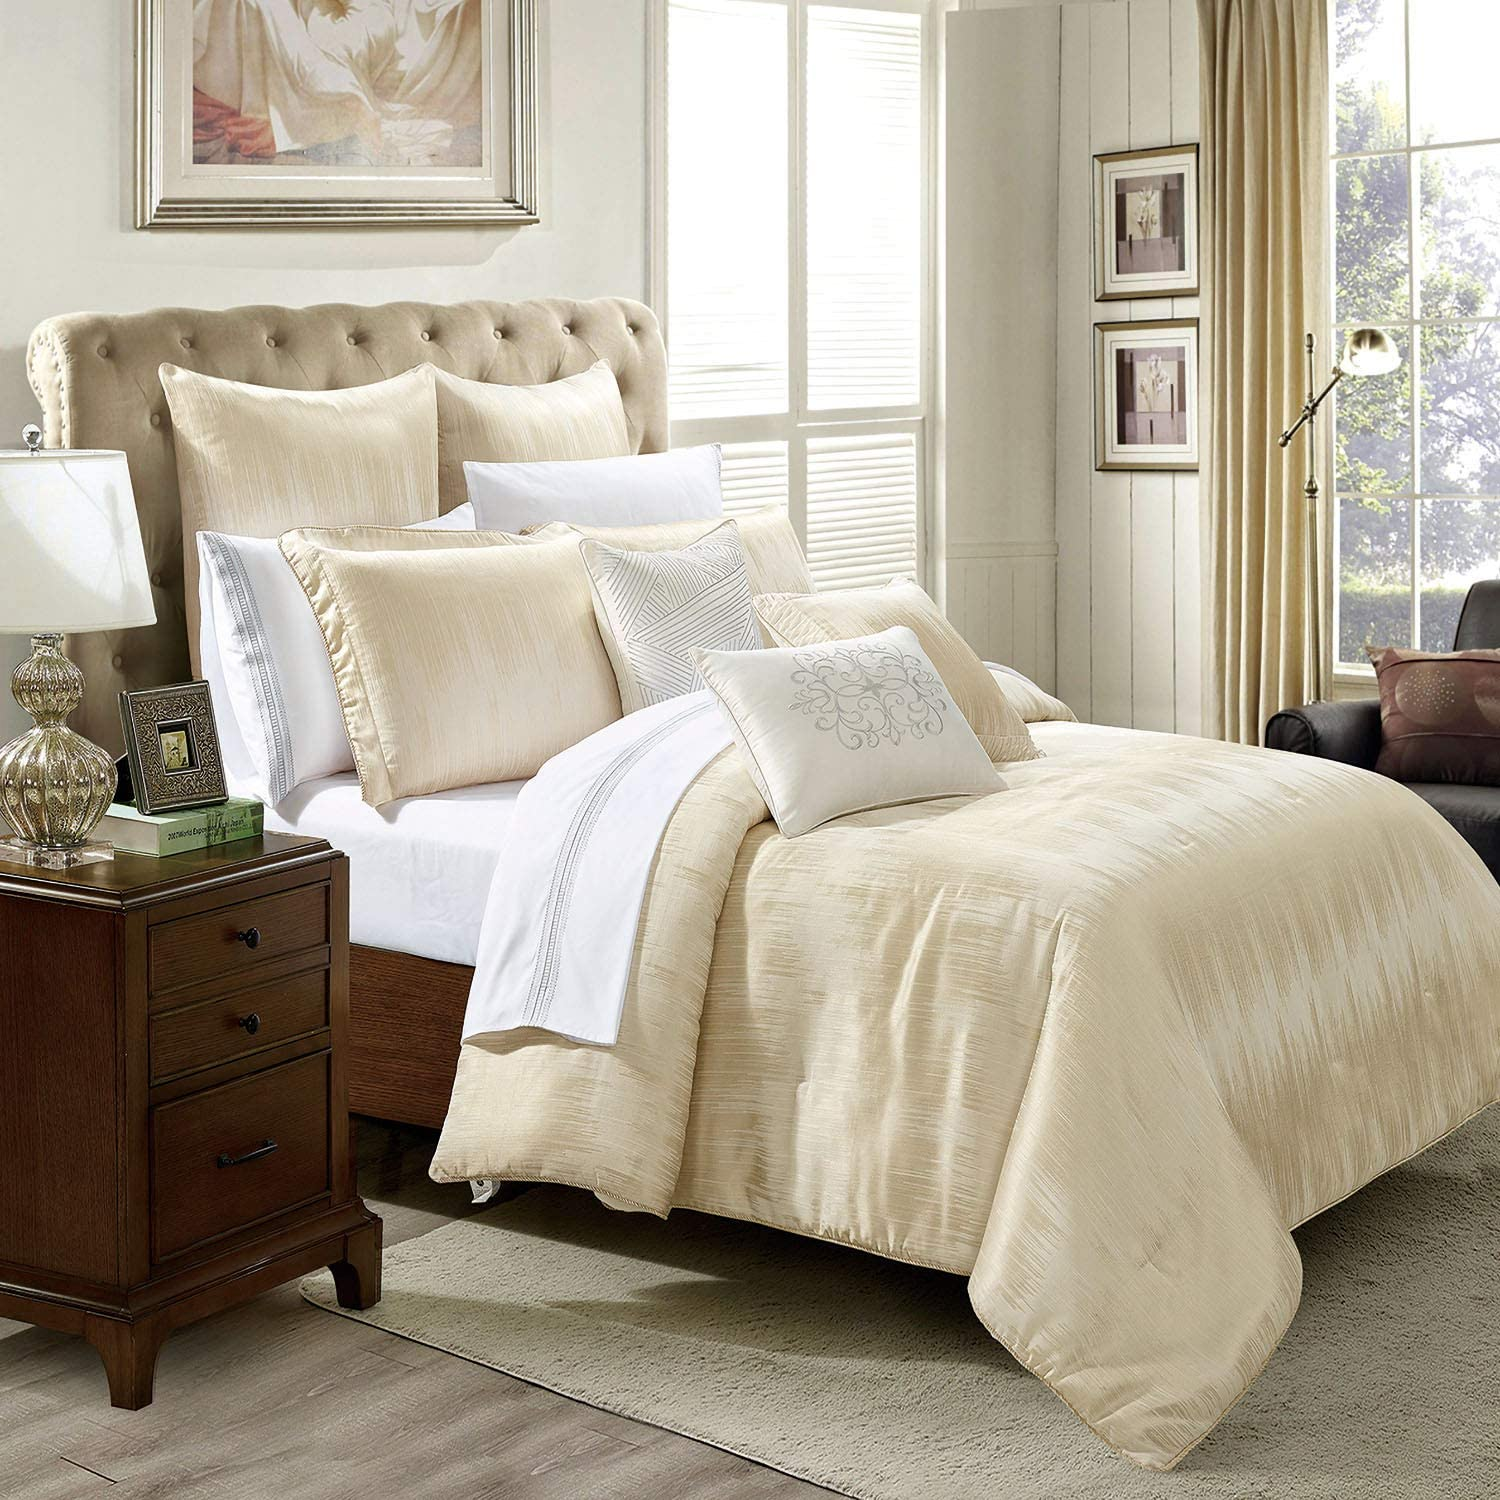 All Sizes Luxury Erika Duvet Cover Bedding Set with Pillow Cases